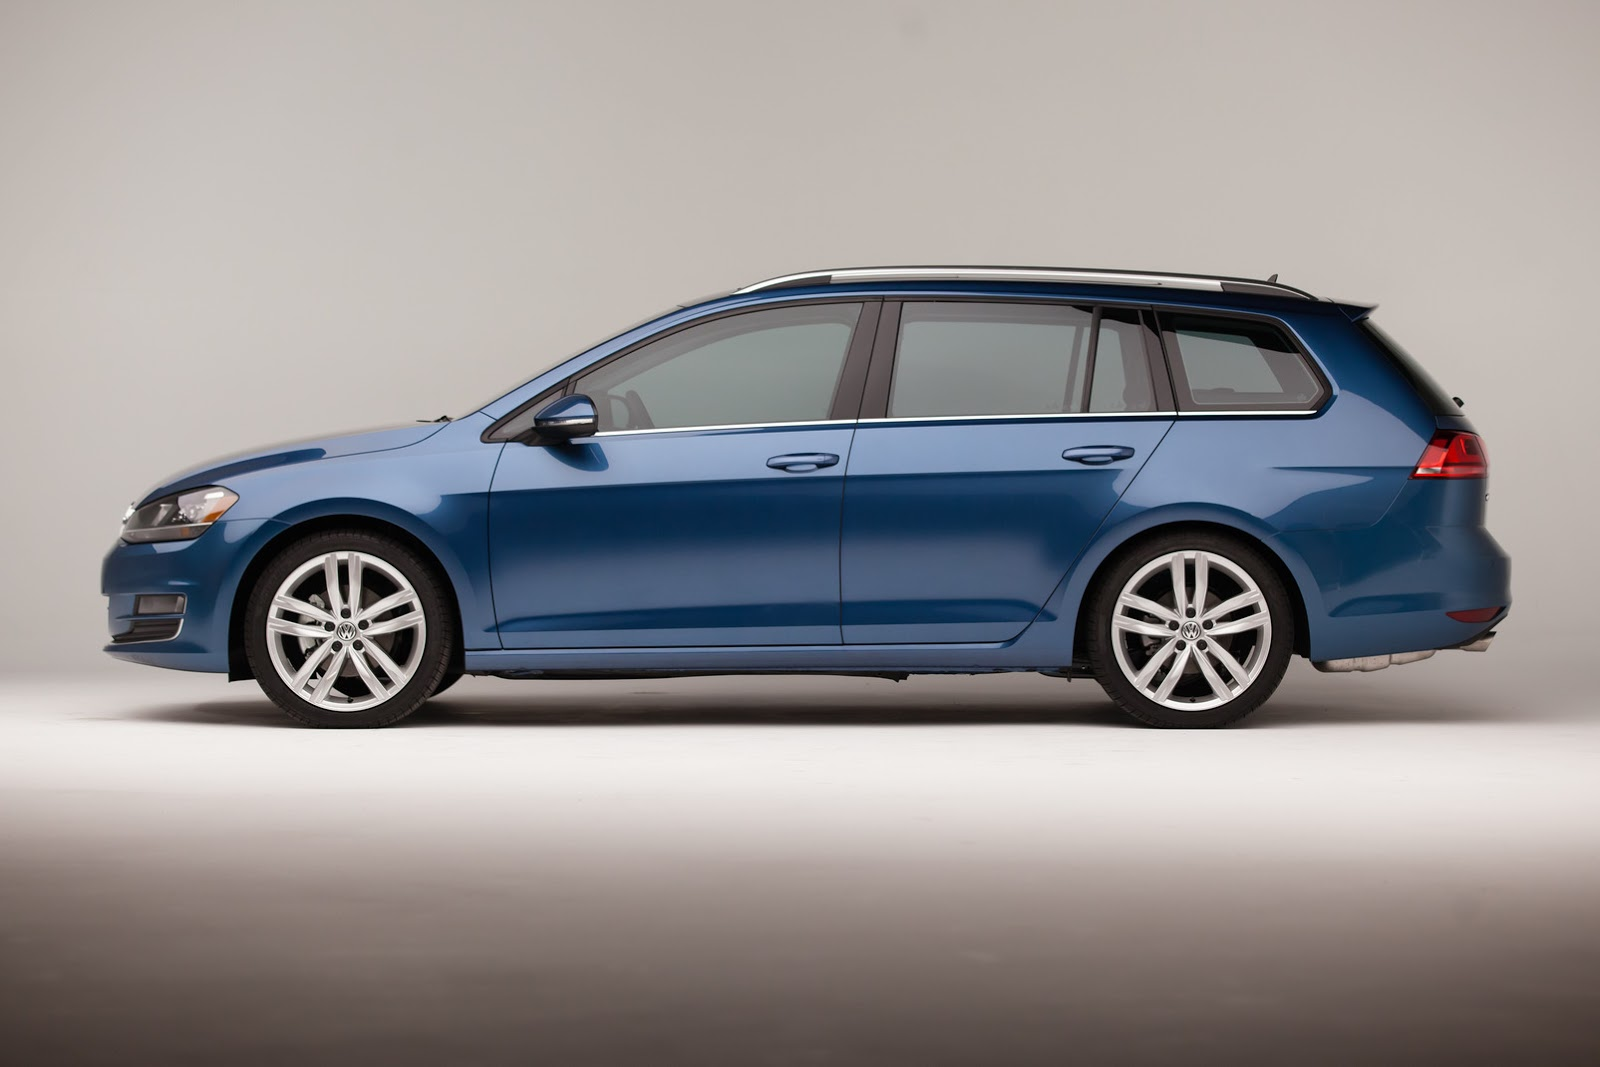 2015 Vw Golf Wagon Prices Start From  21 395